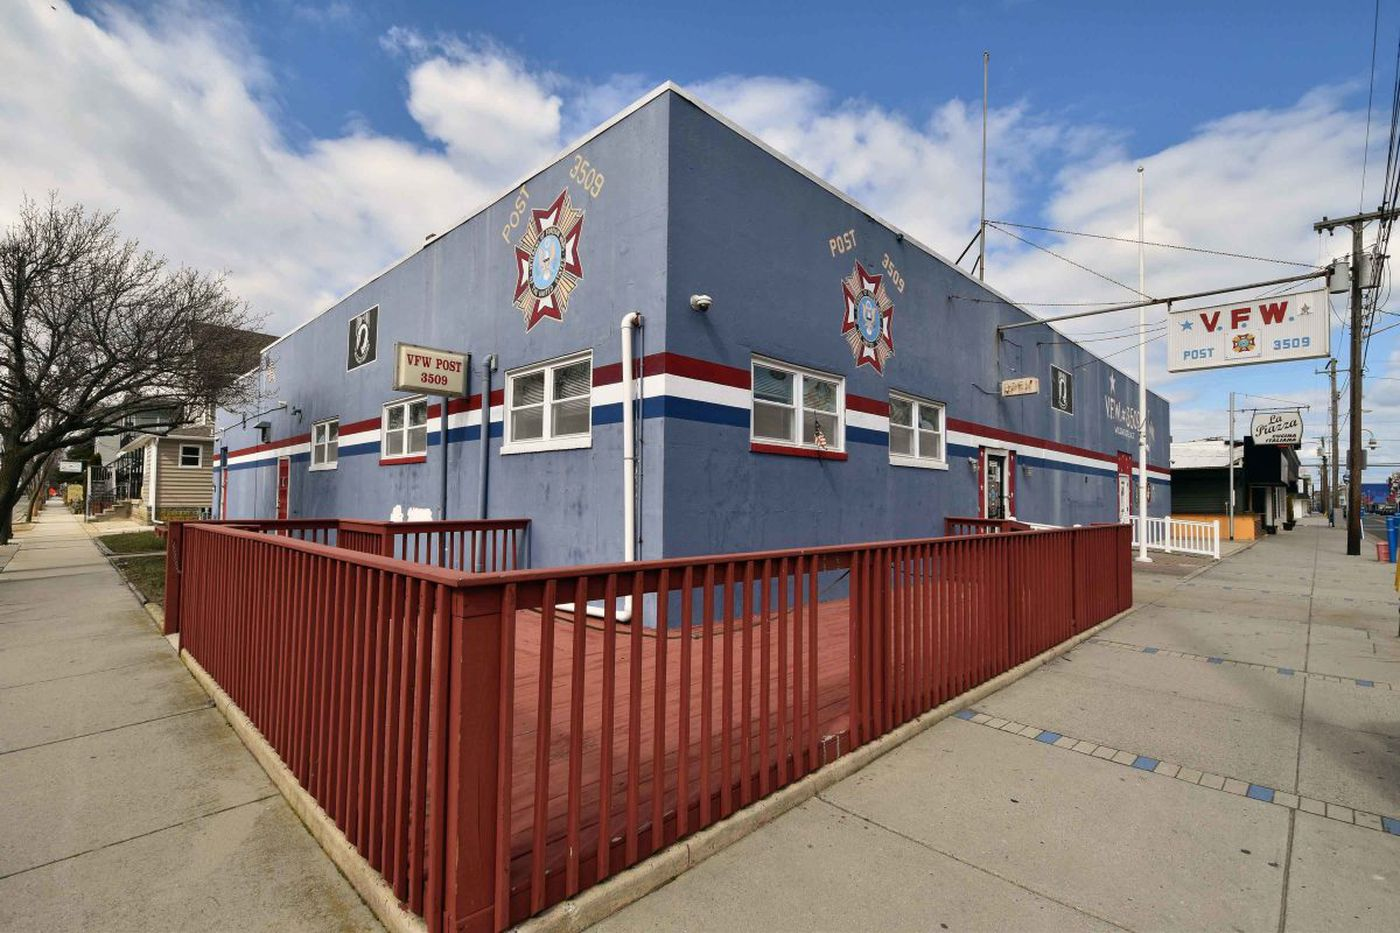 South Jersey VFW Post shut down because it 'became a corner bar'